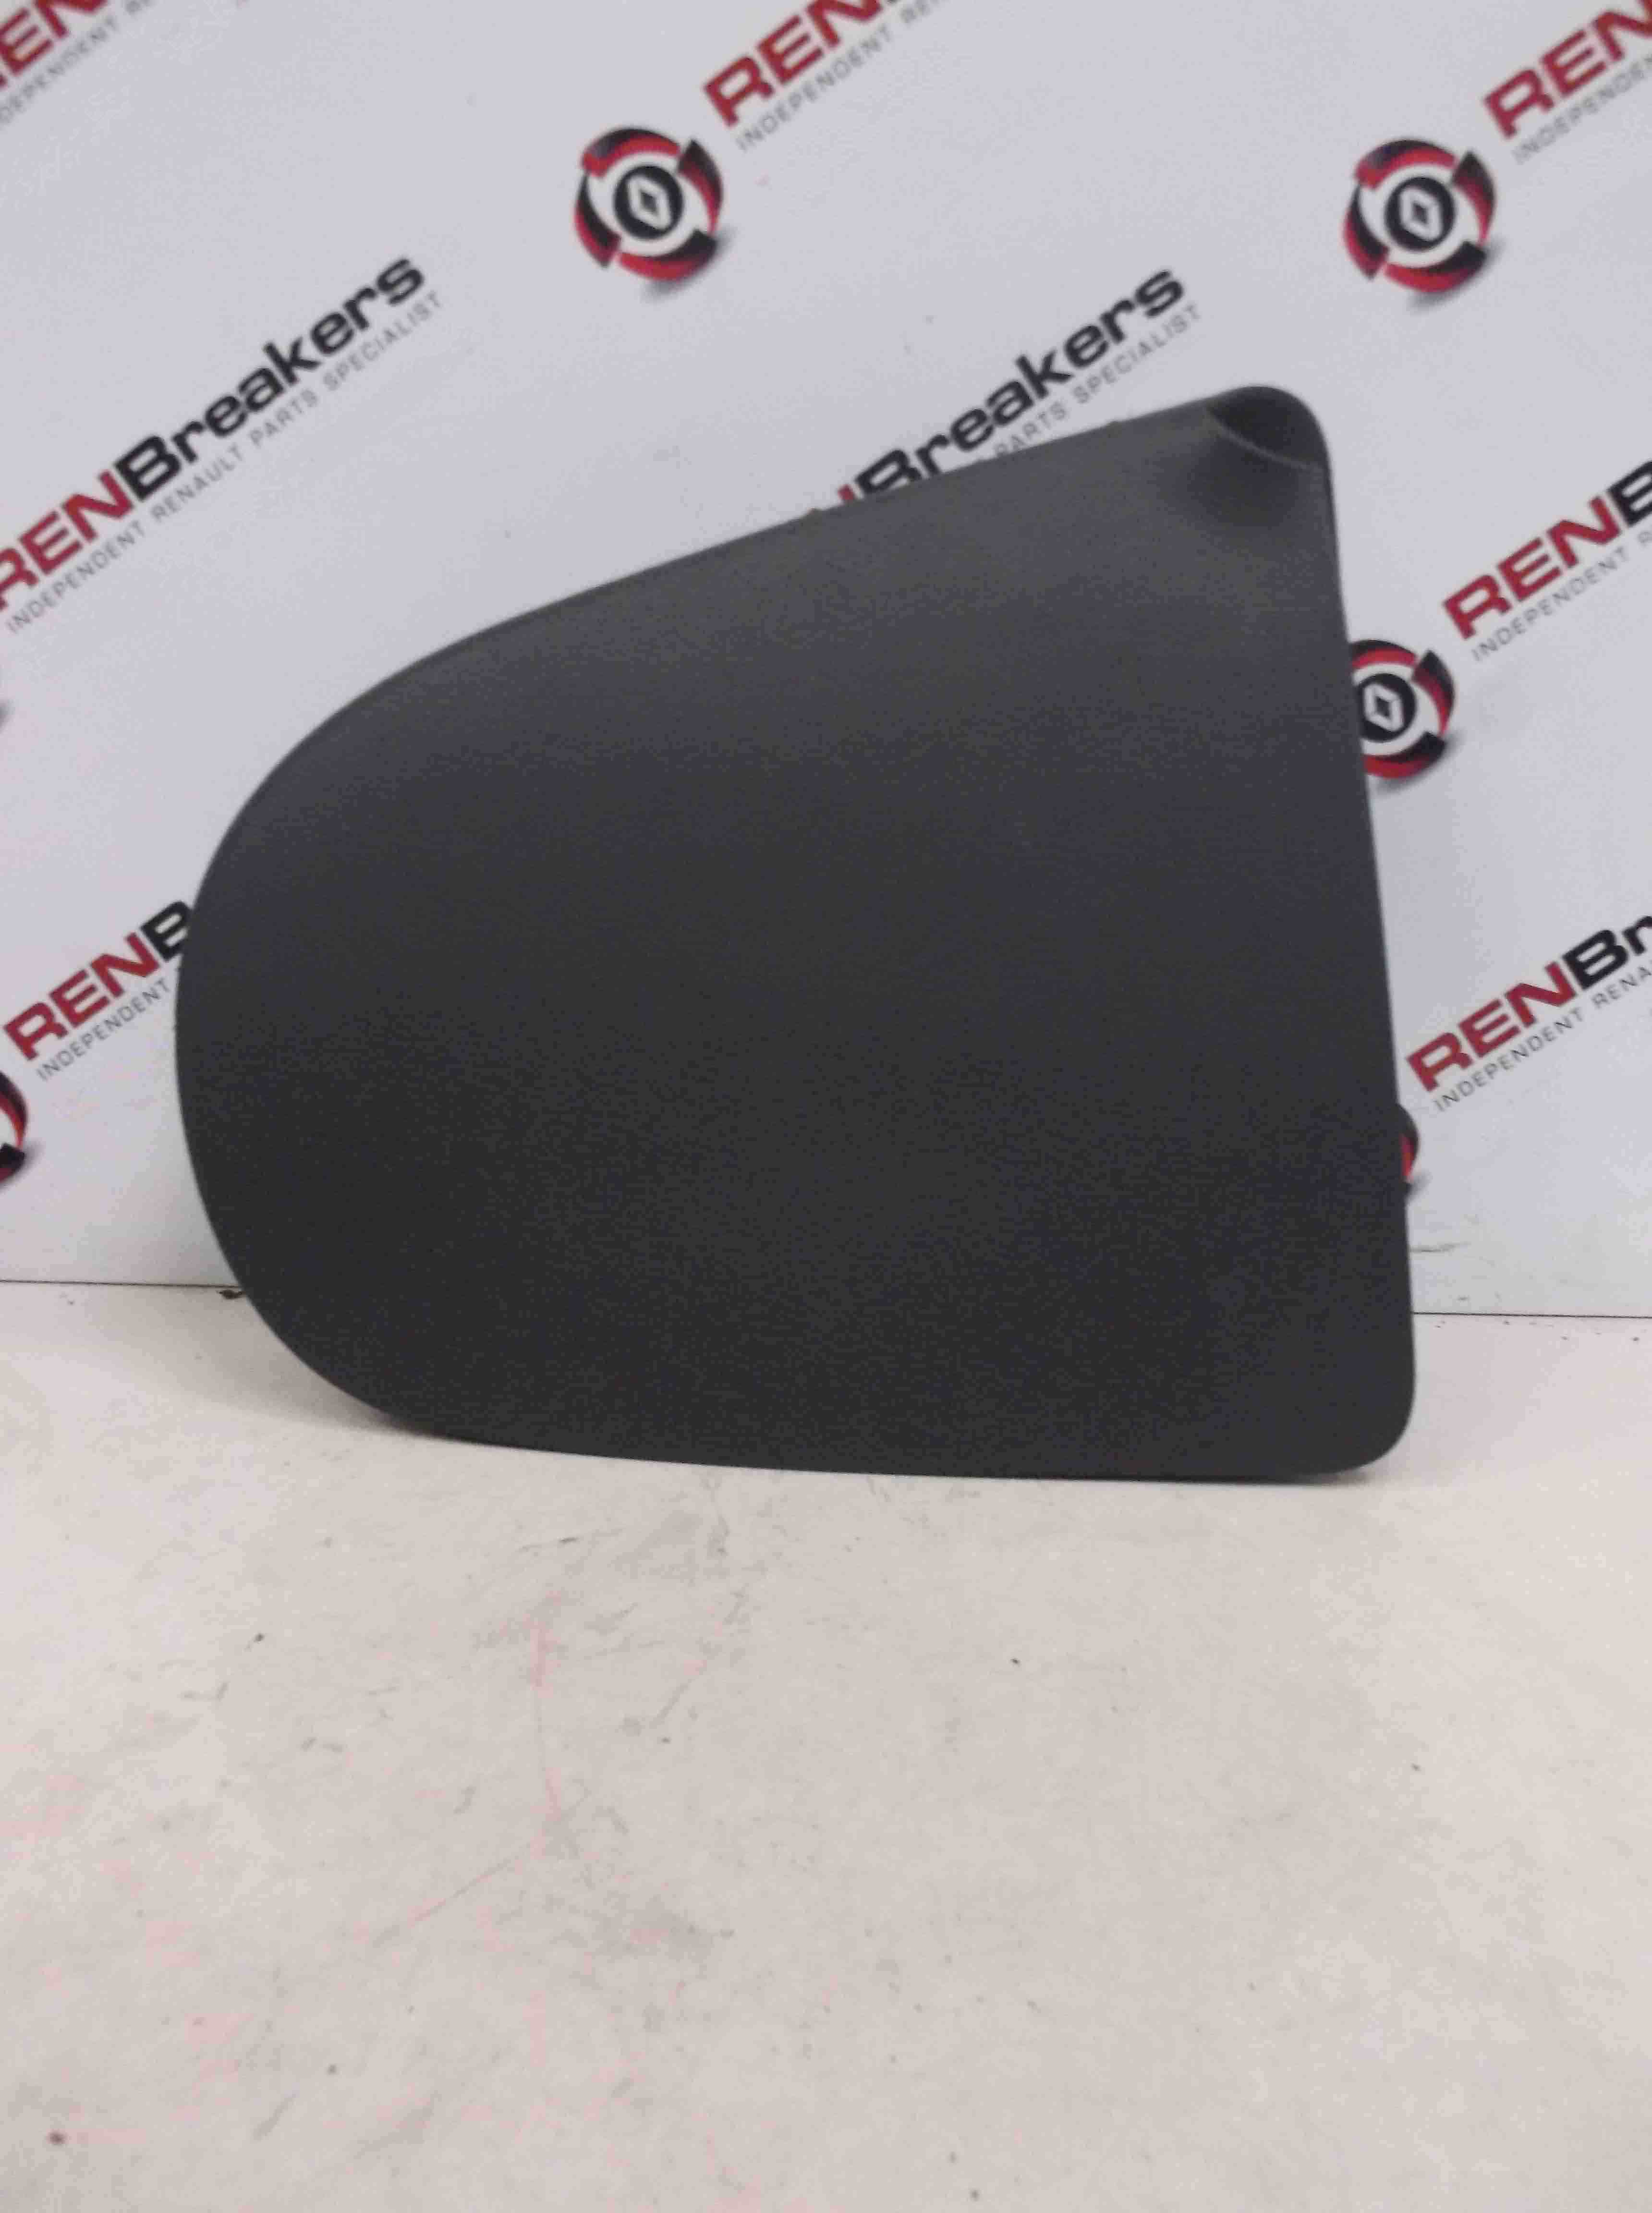 Renault Modus 2004-2008 Dashboard Coil Tray Cover Trim 8200327444